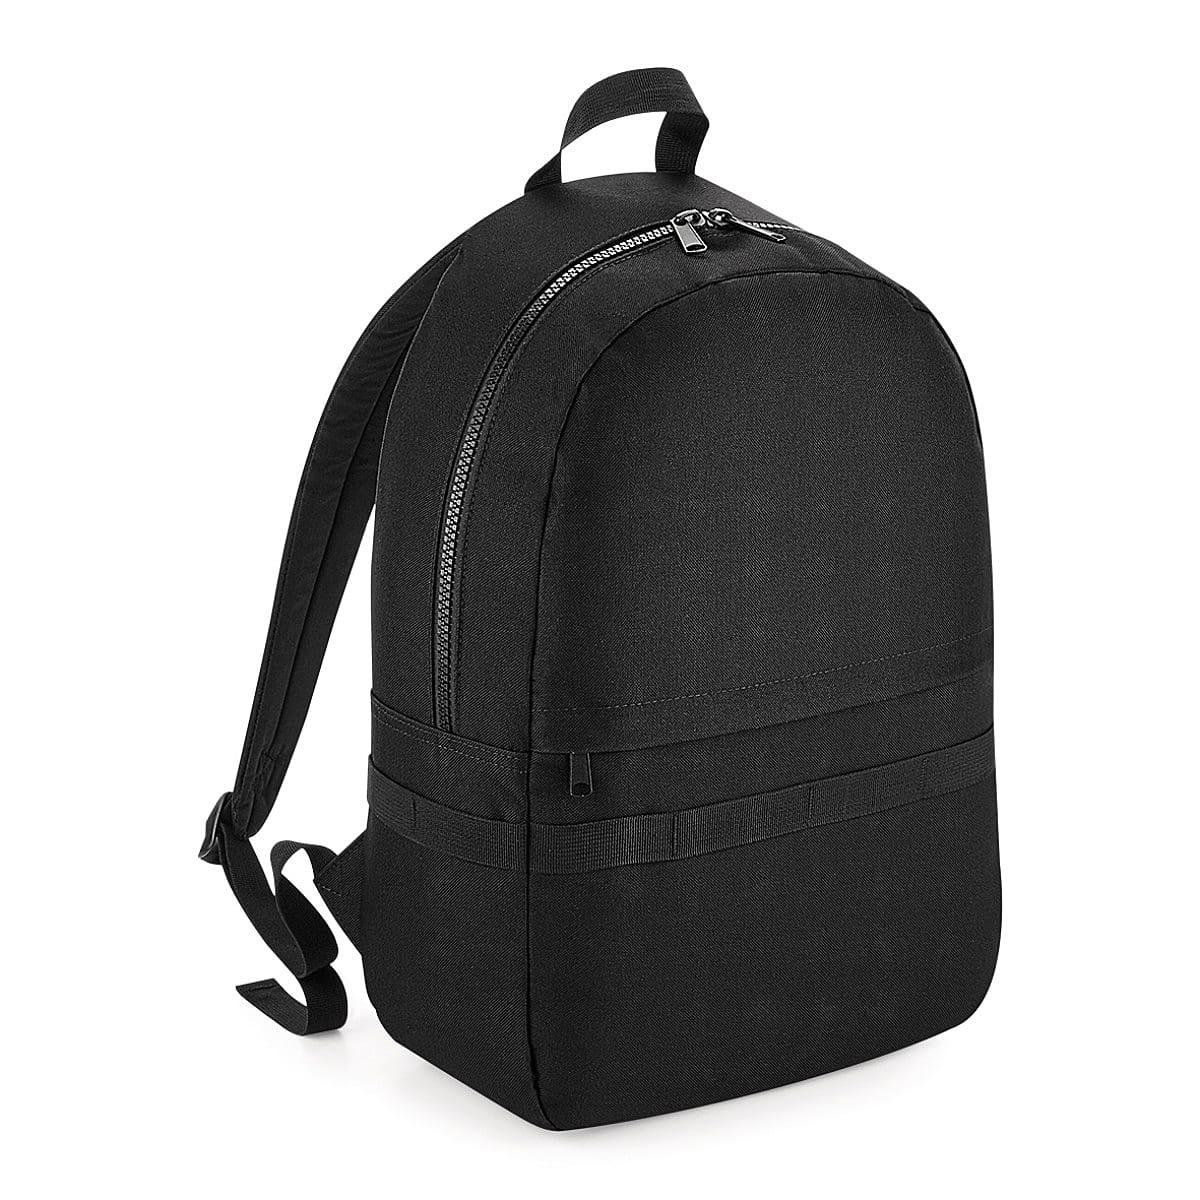 Bagbase Modulr 20 Litre Backpack in Black (Product Code: BG240)